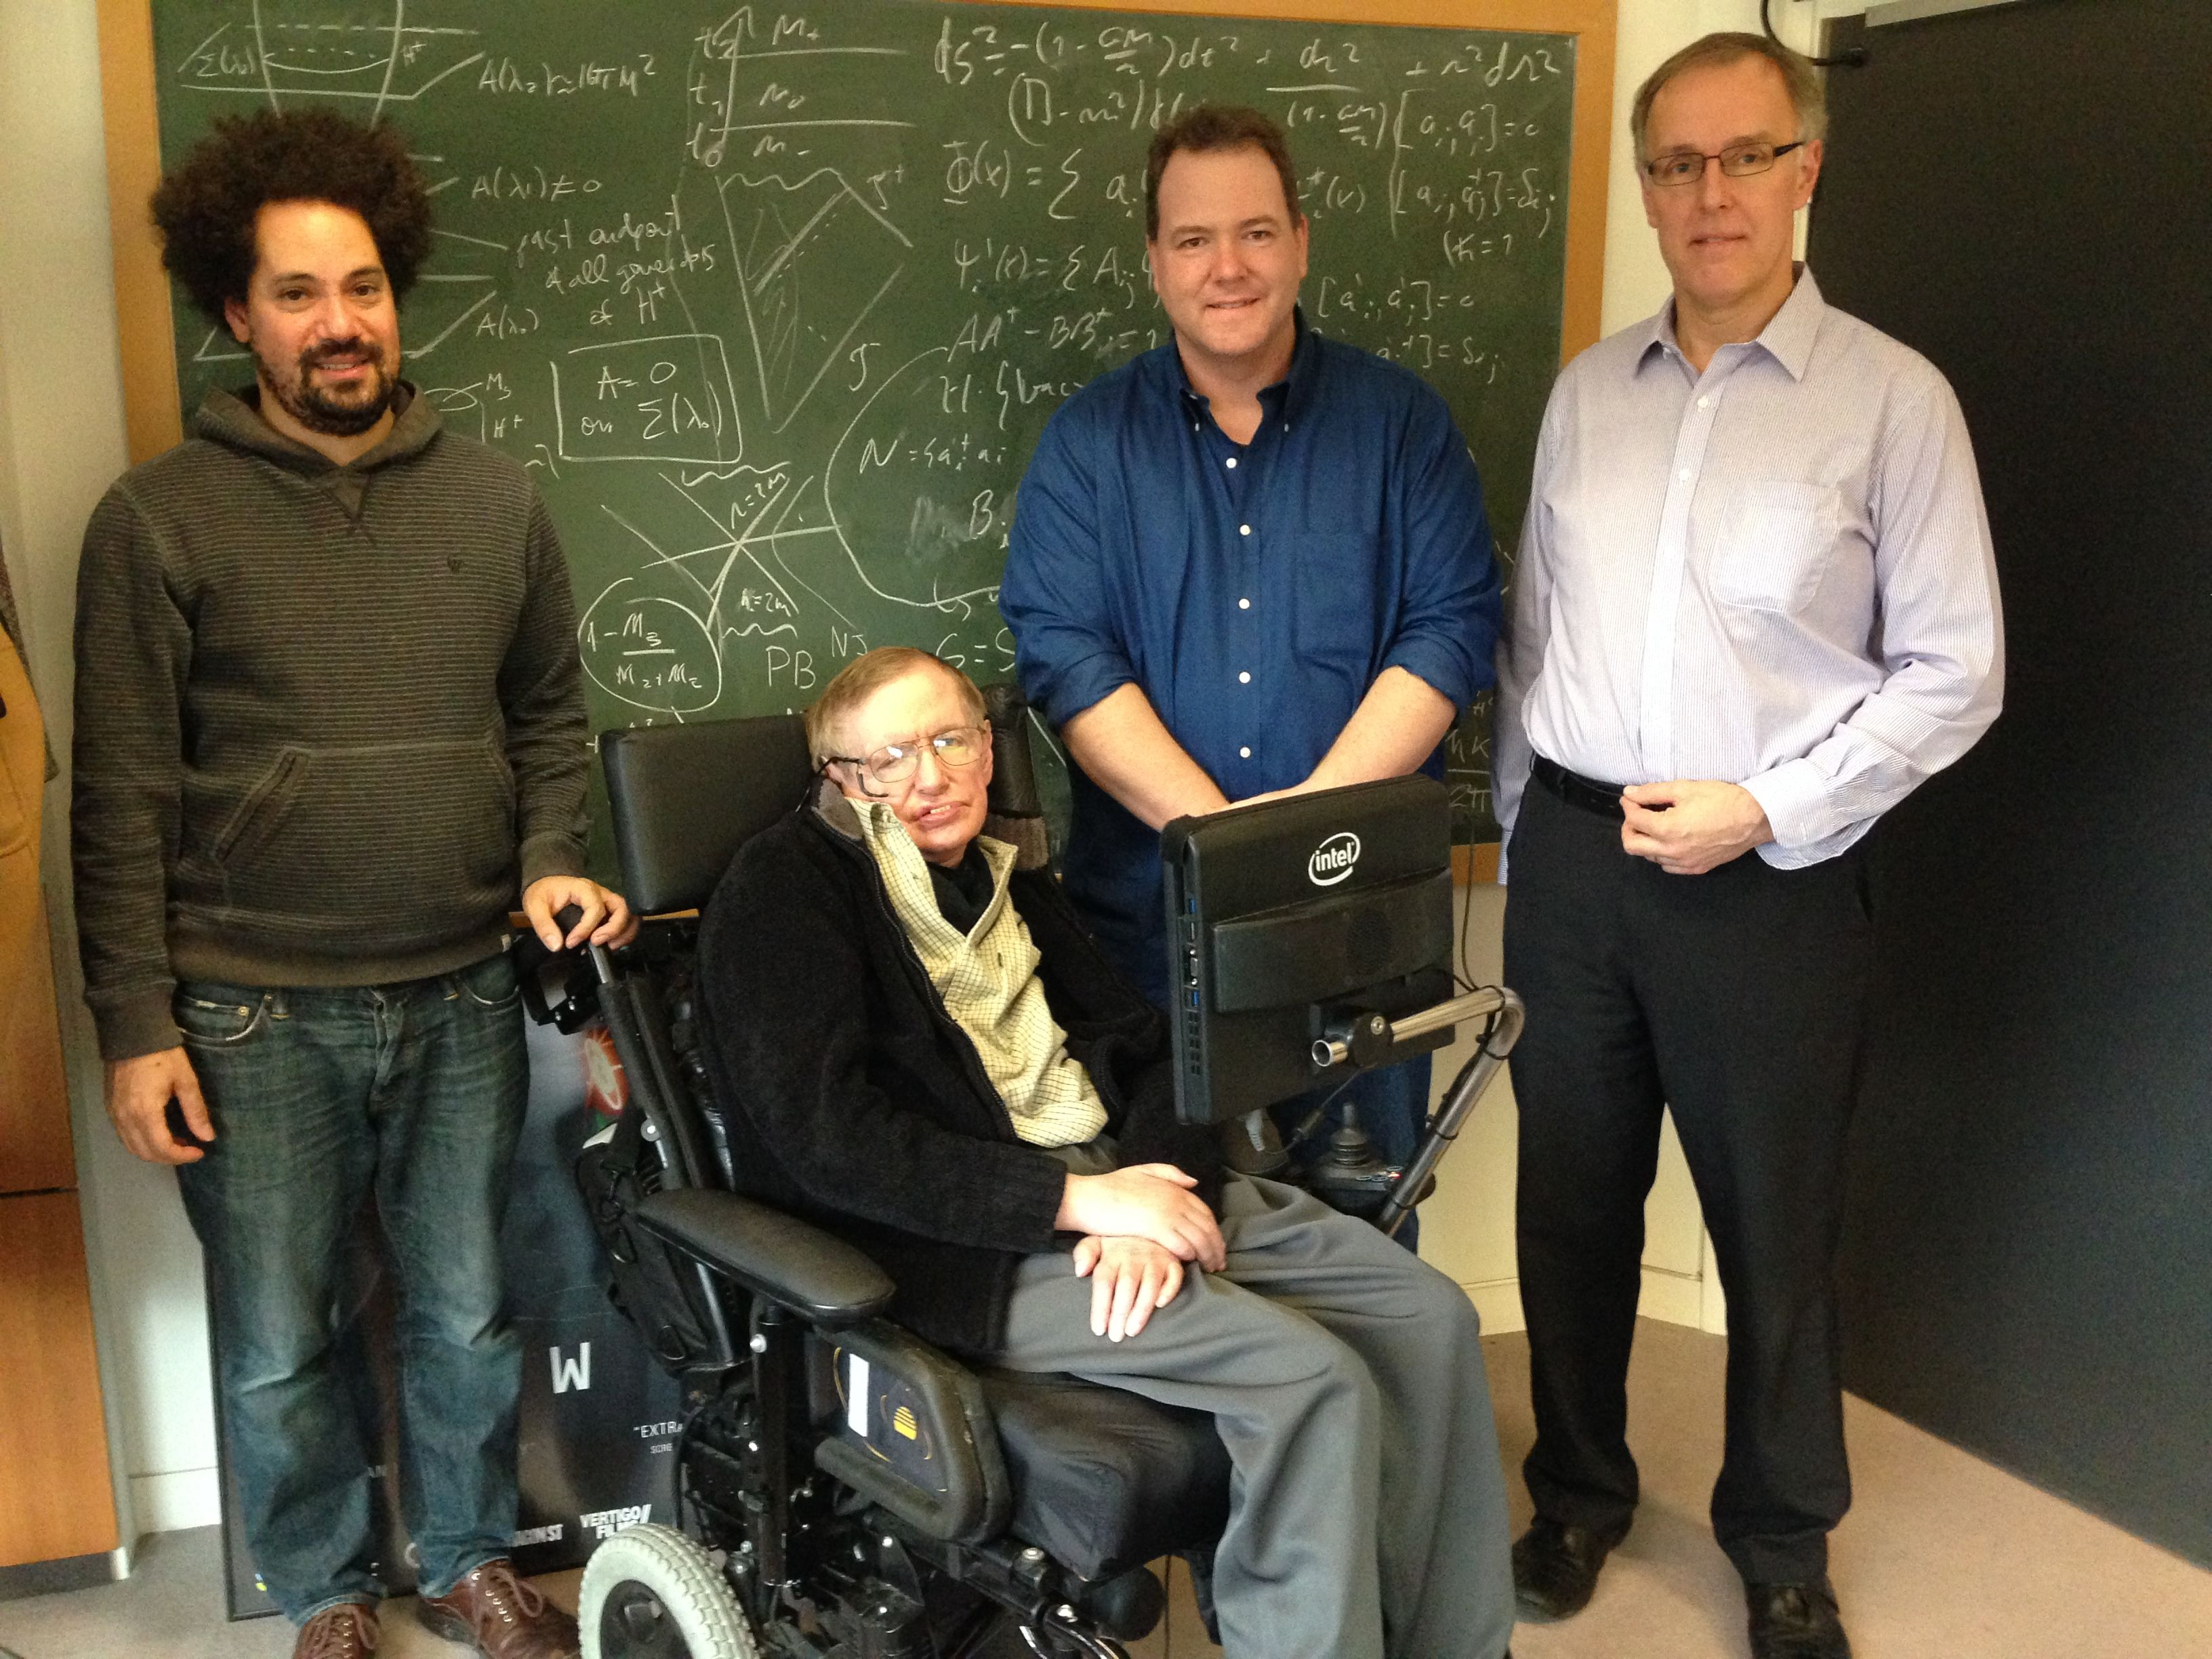 Stephen Hawking with New Computer.jpg